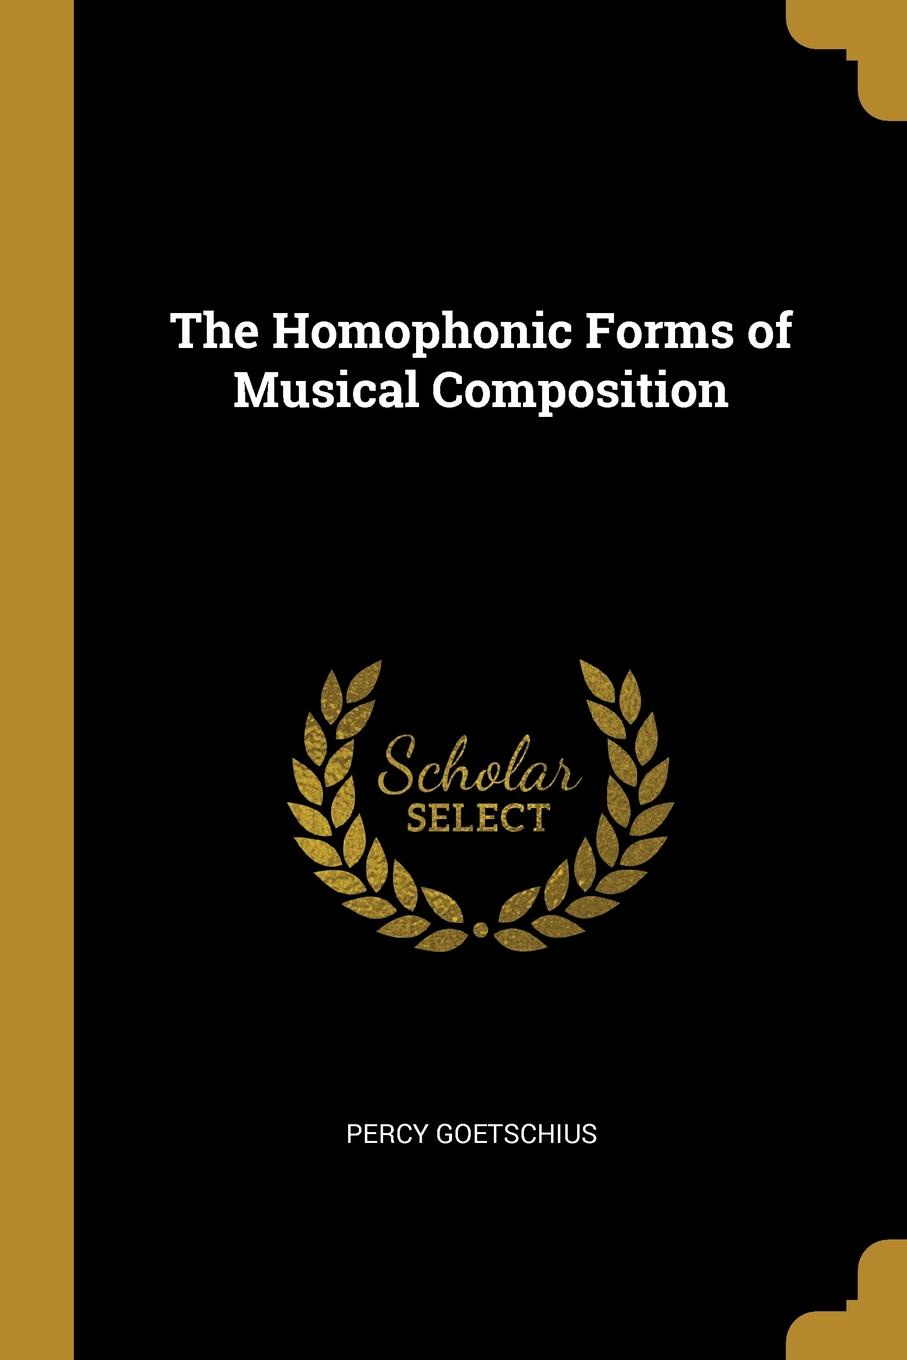 Percy Goetschius. The Homophonic Forms of Musical Composition